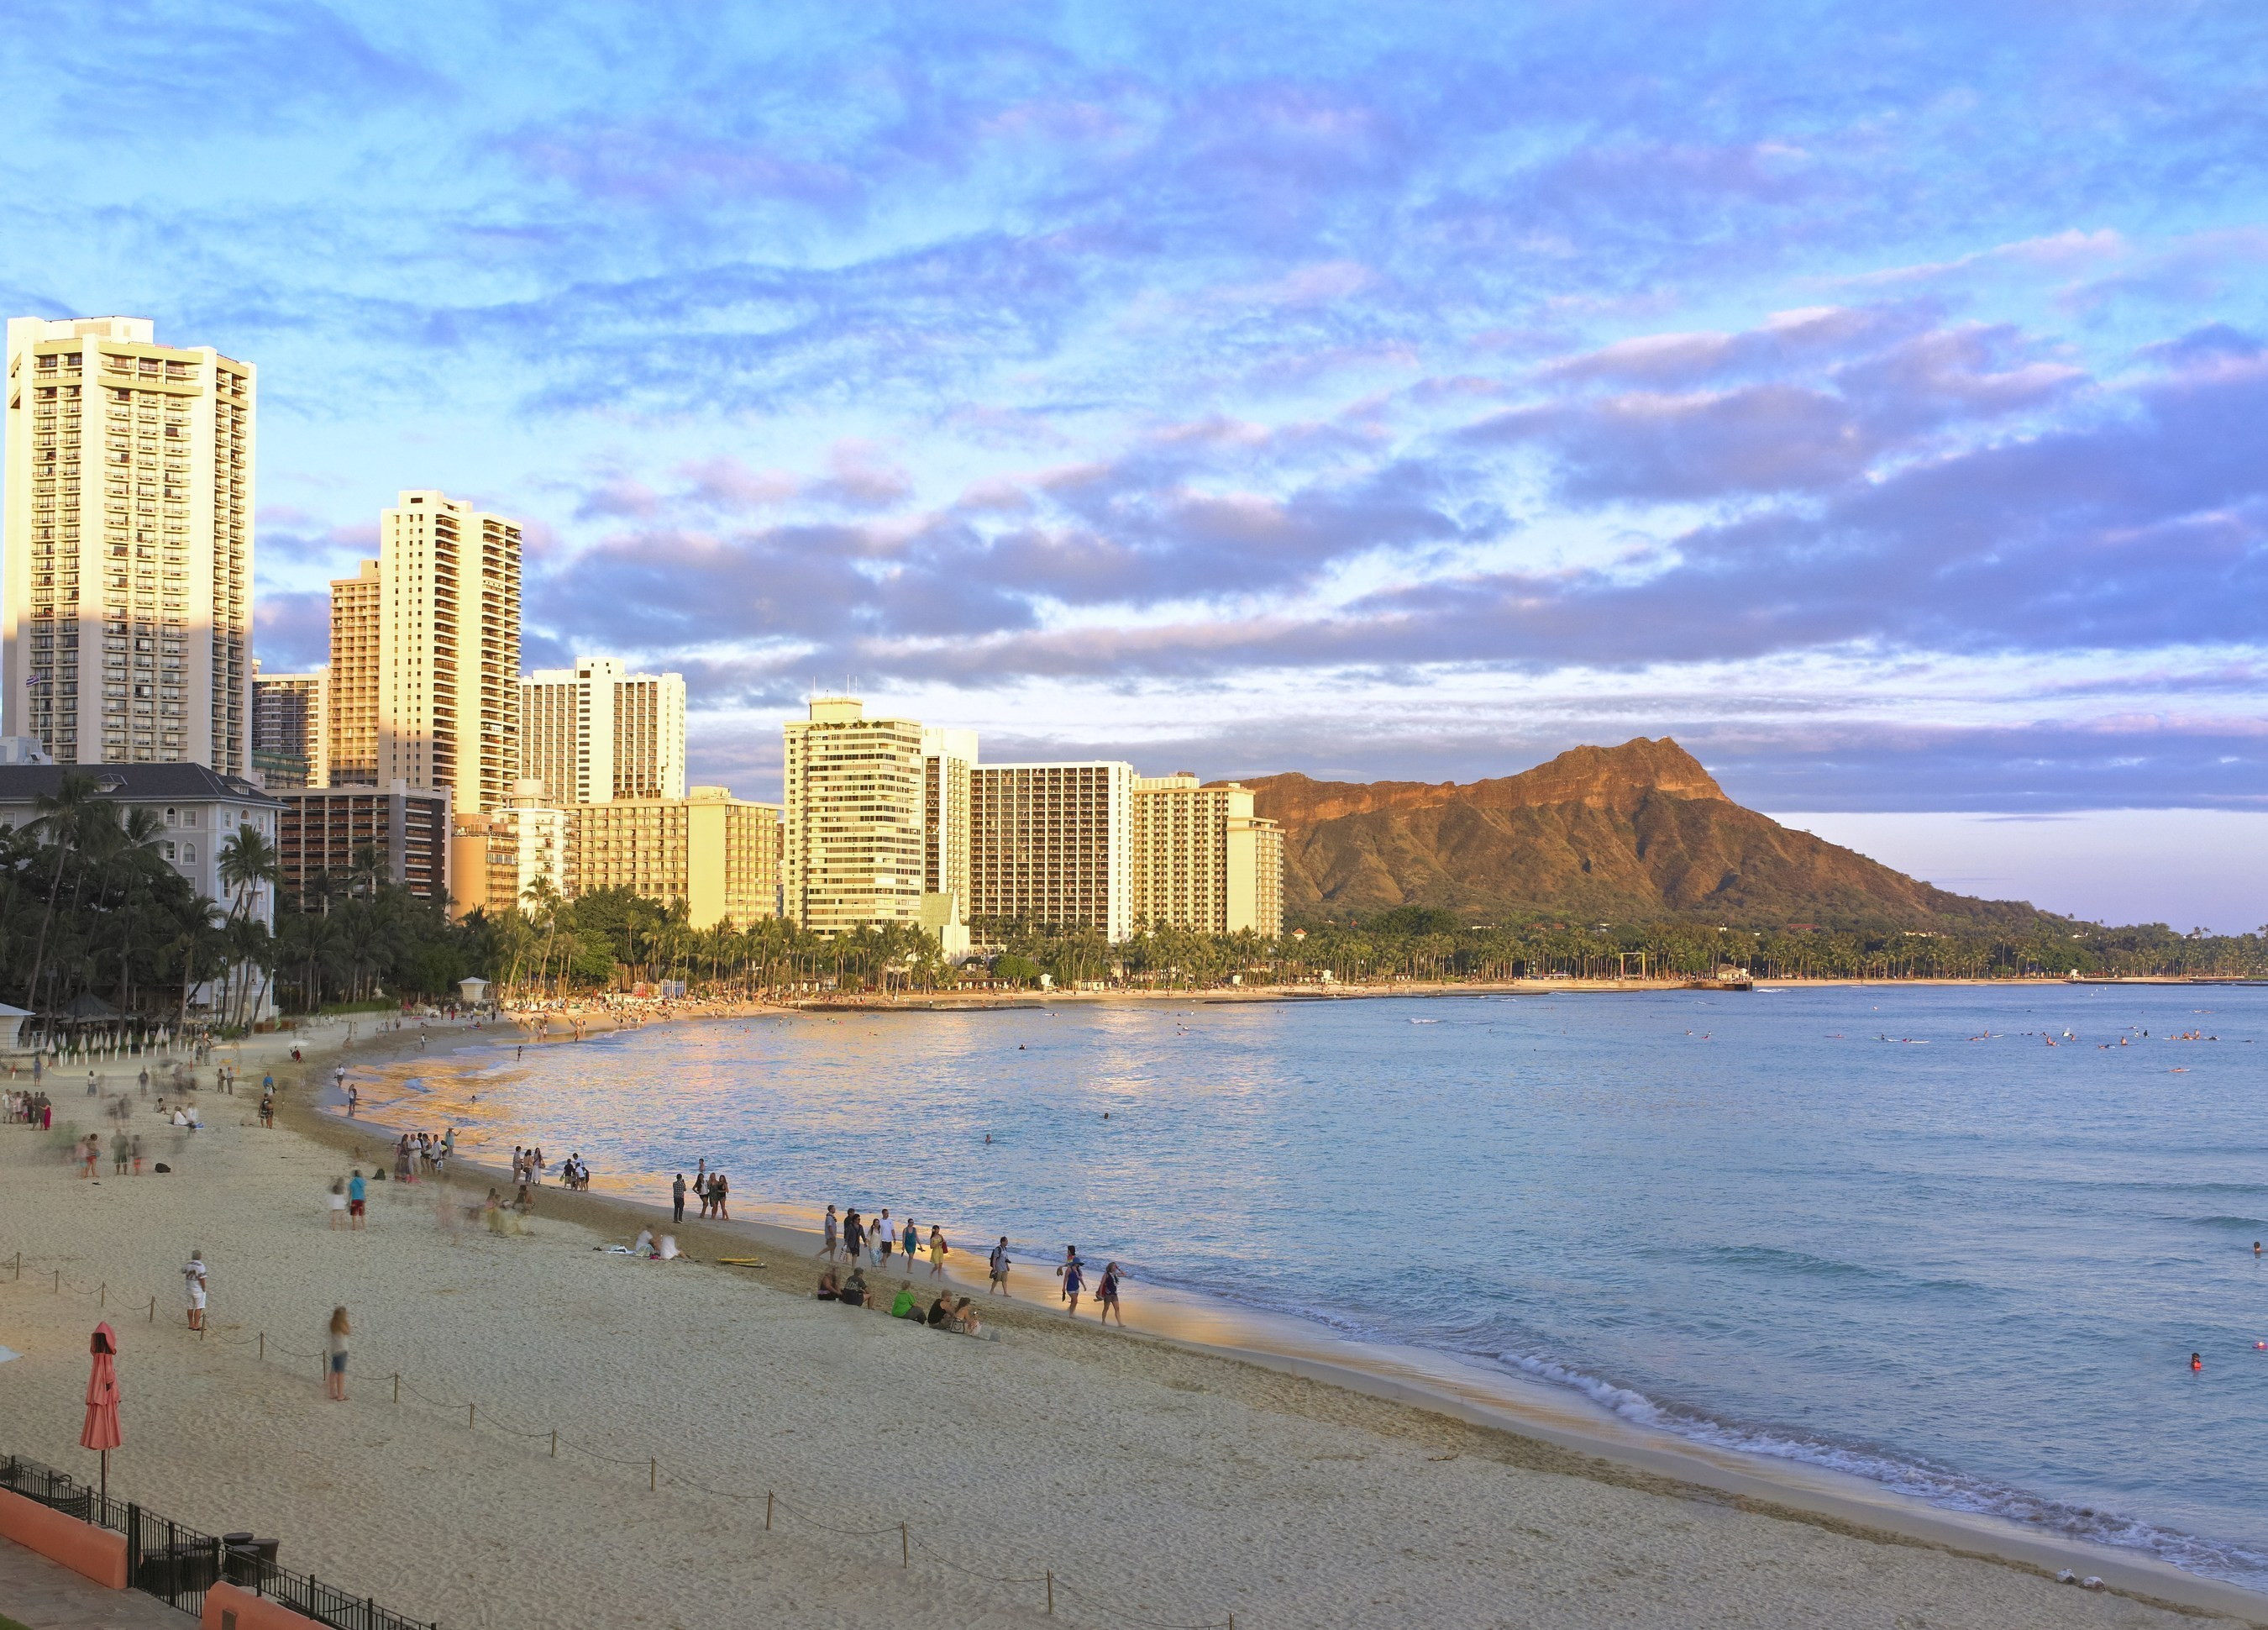 Travelers Save Big With Pleasant Holidays New Hawaii